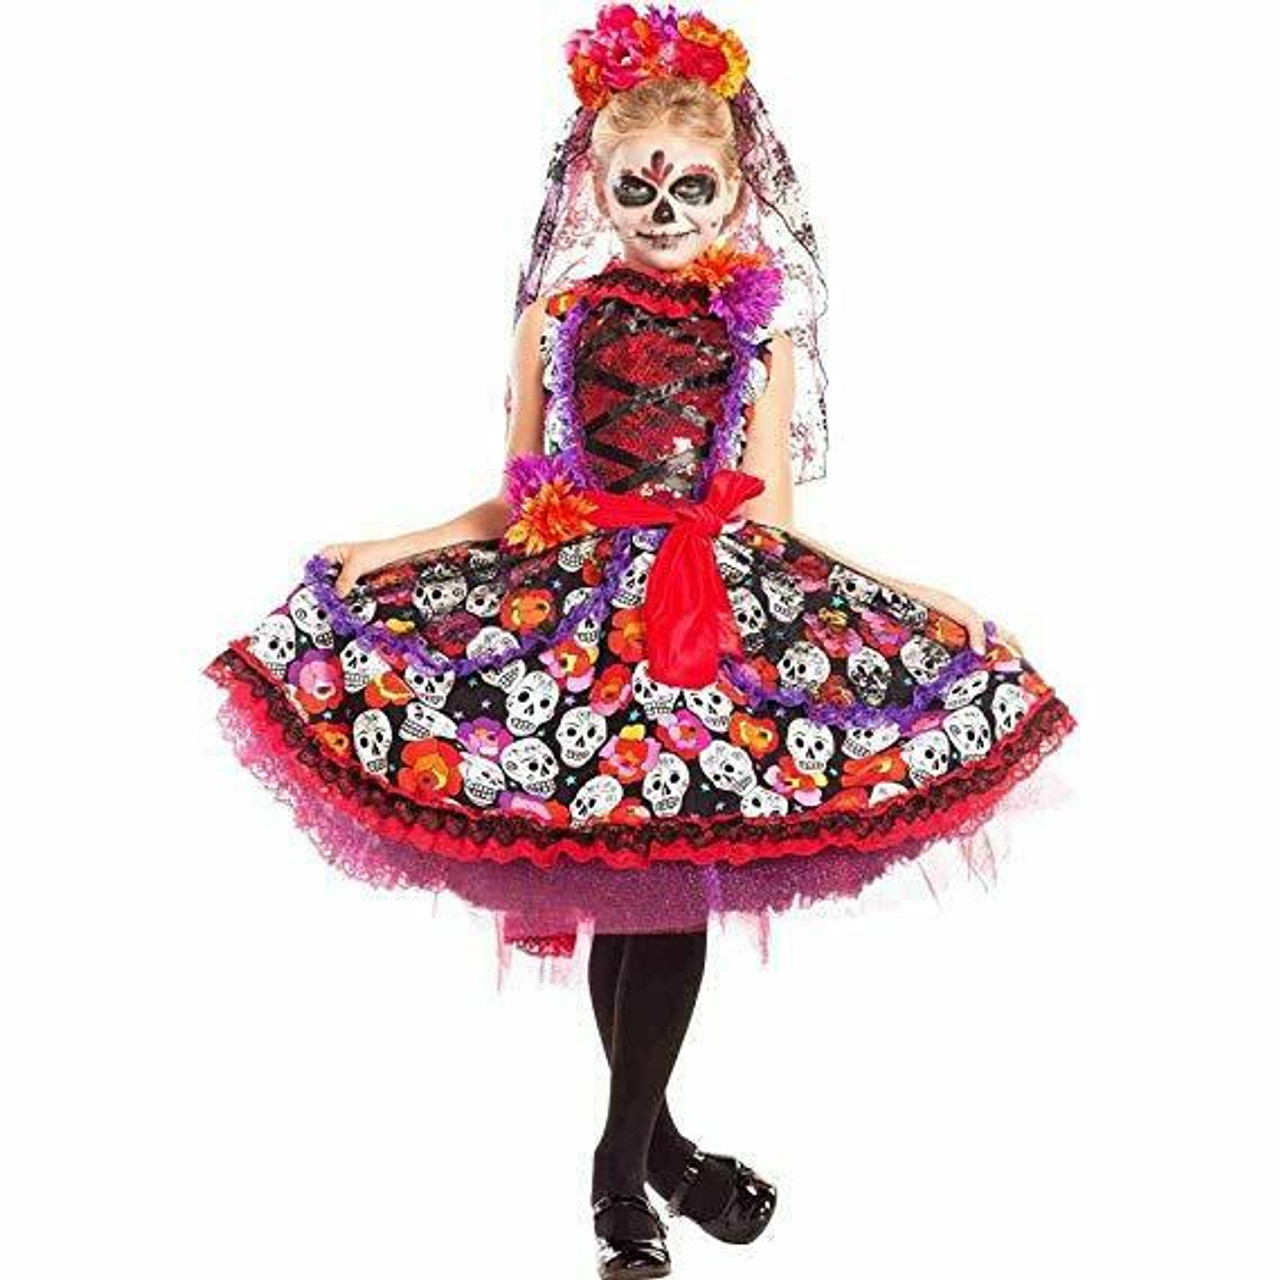 9eef0ceb70c Party King Lady of the Dead Sugar Skull Dress Childrens Halloween Costume  PK770C